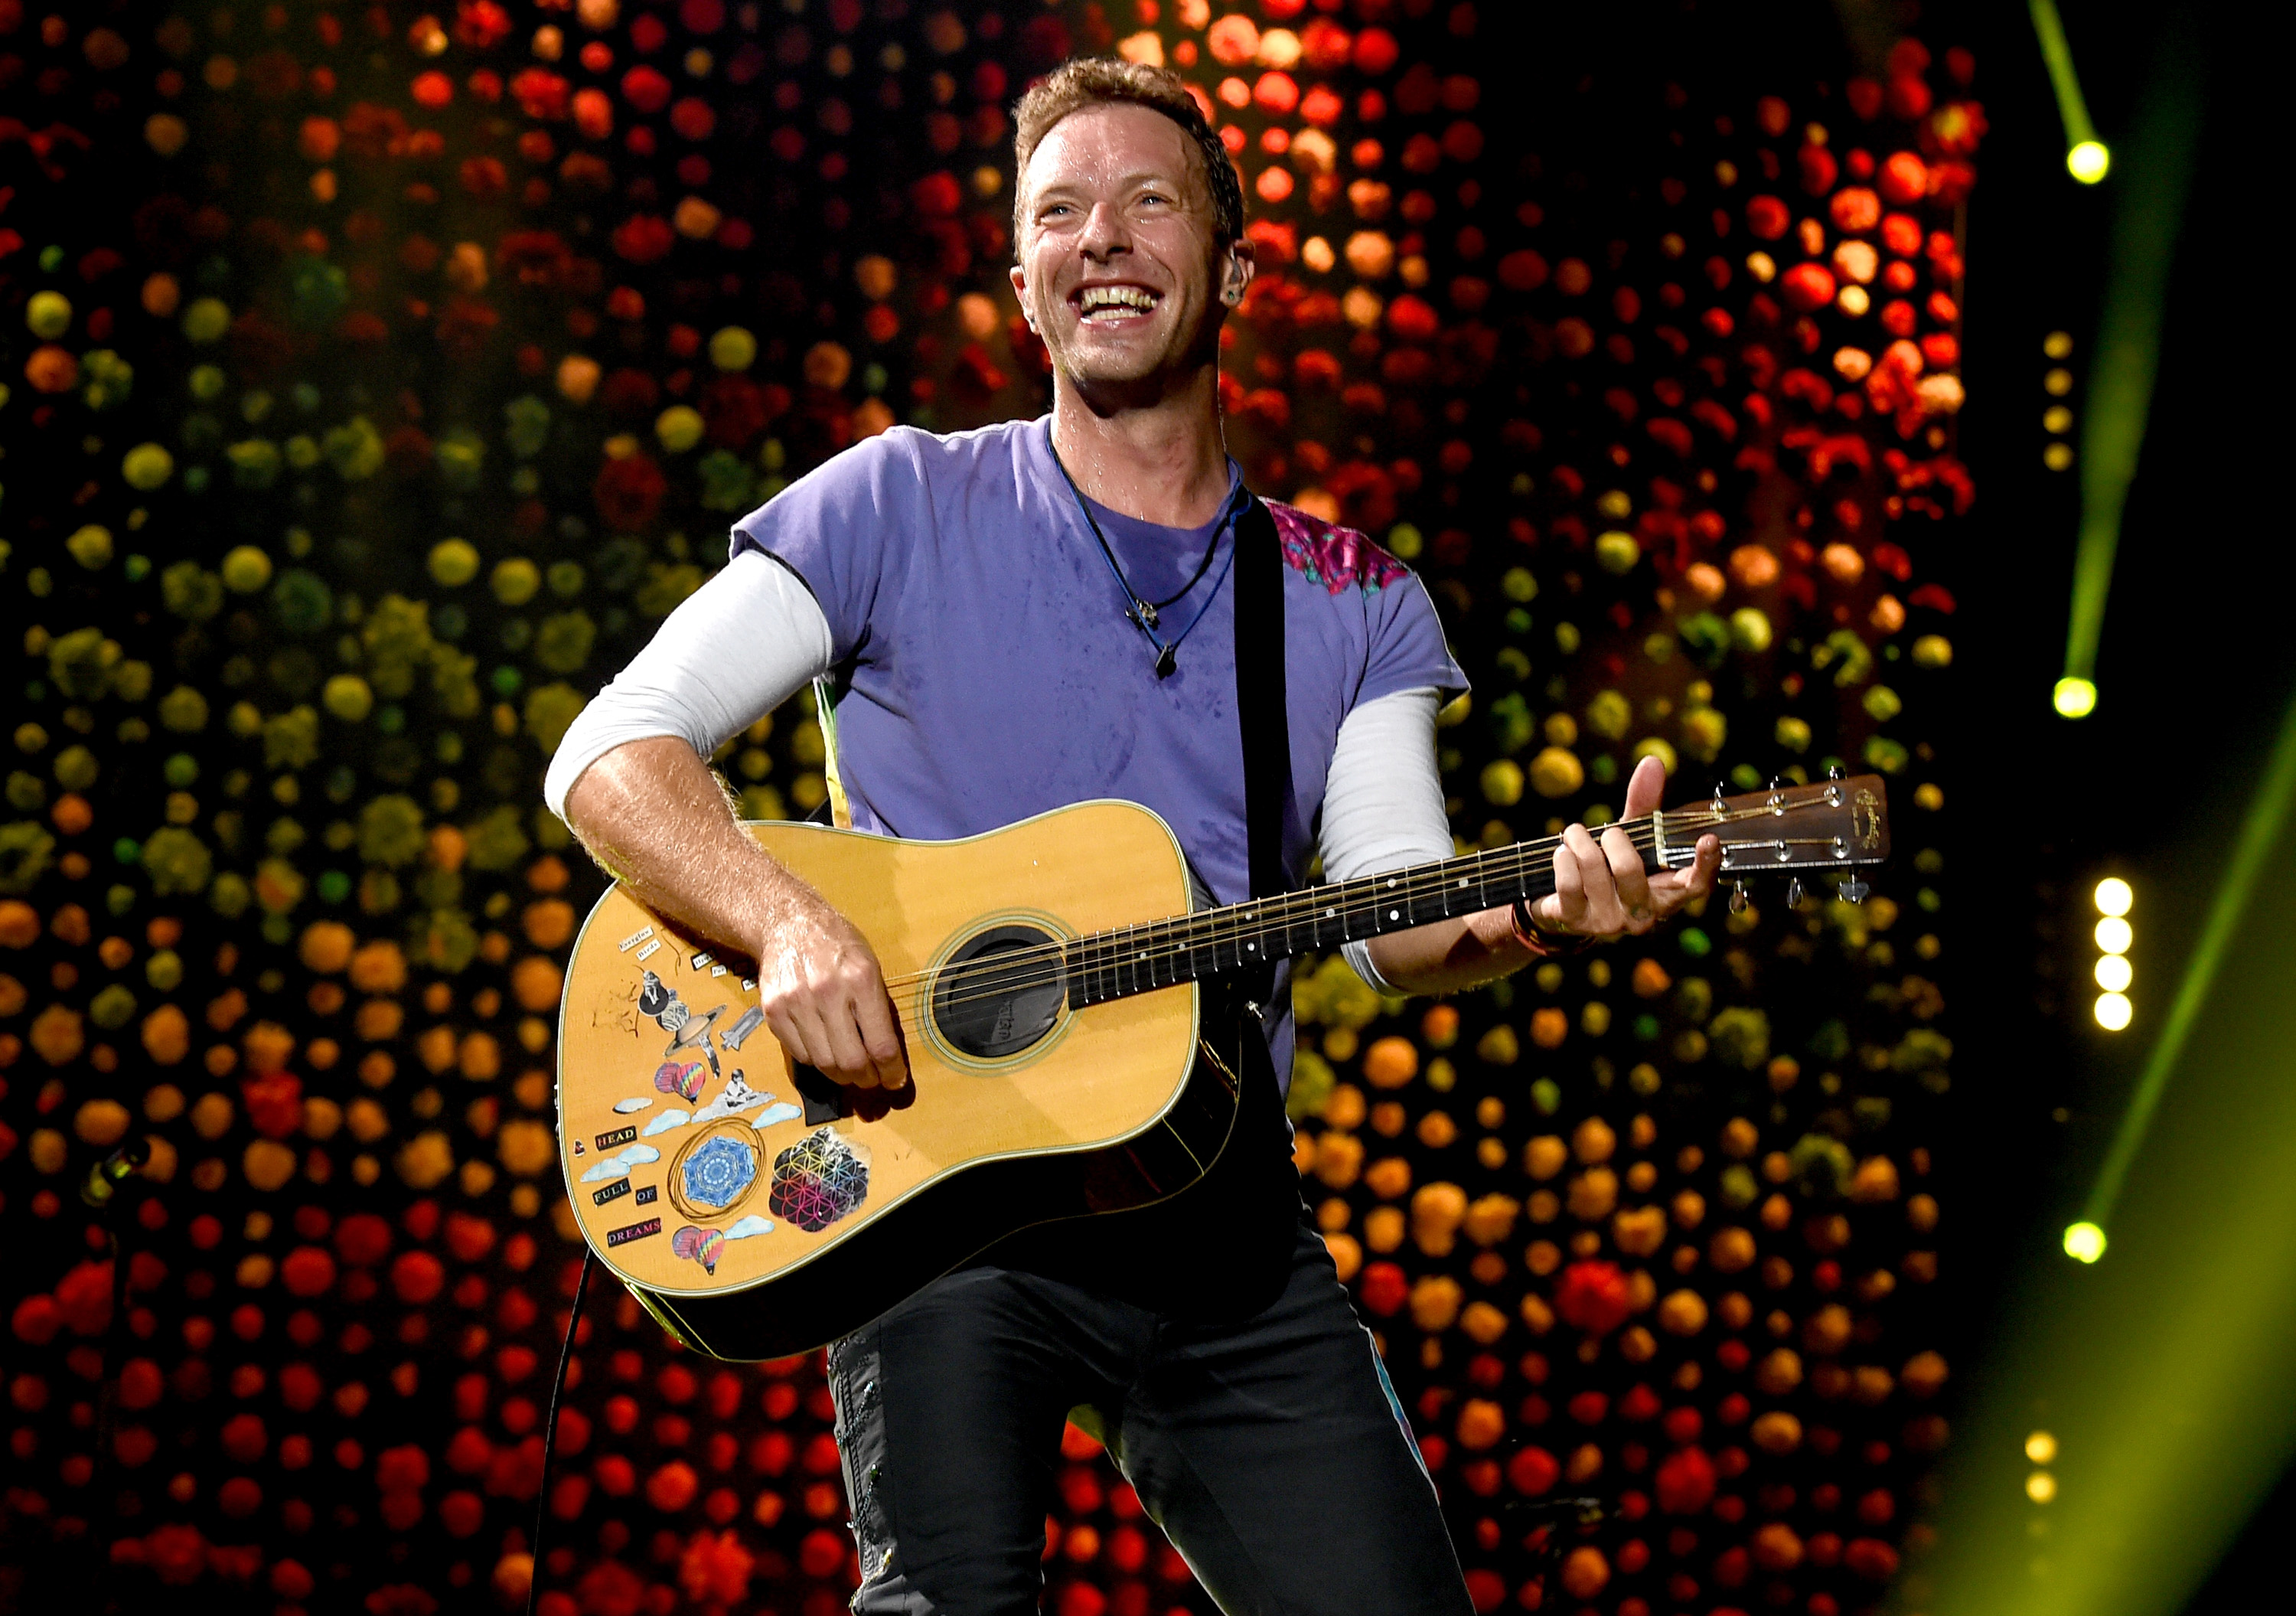 Singer Chris Martin of Coldplay performs at the Rose Bowl on October 6, 2017 in Pasadena, California.